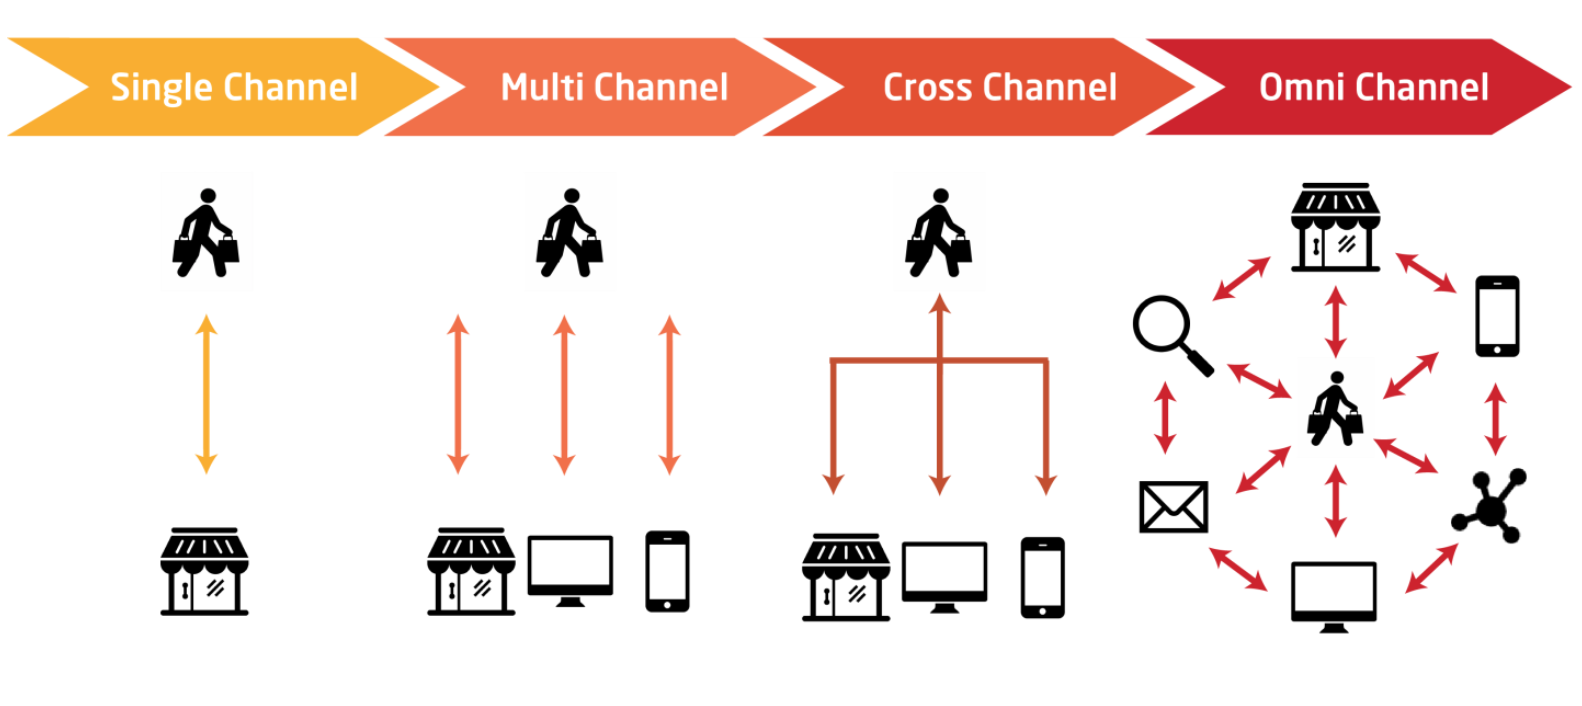 Inevitable Digital Transformation - Cross Channel